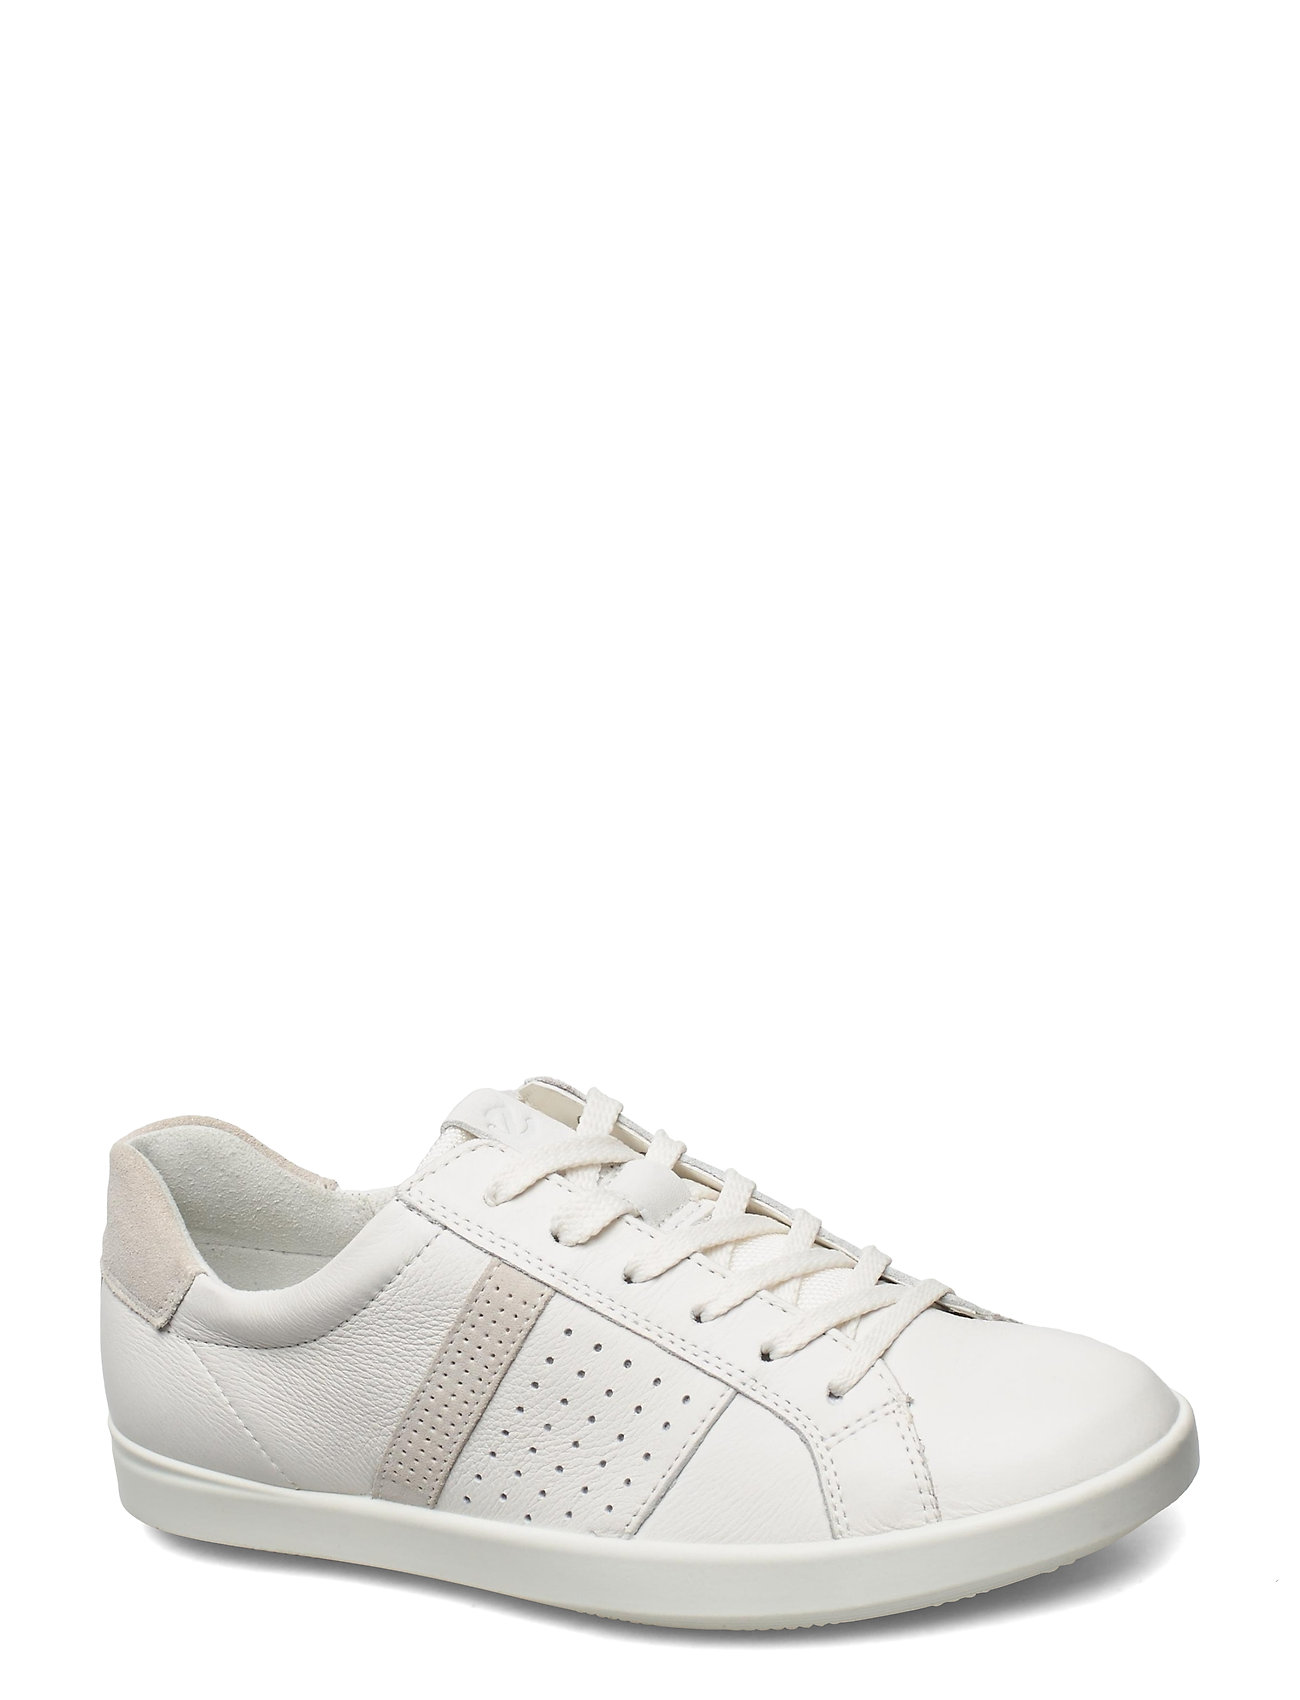 Image of Leisure Low-top Sneakers Hvid ECCO (3485973565)